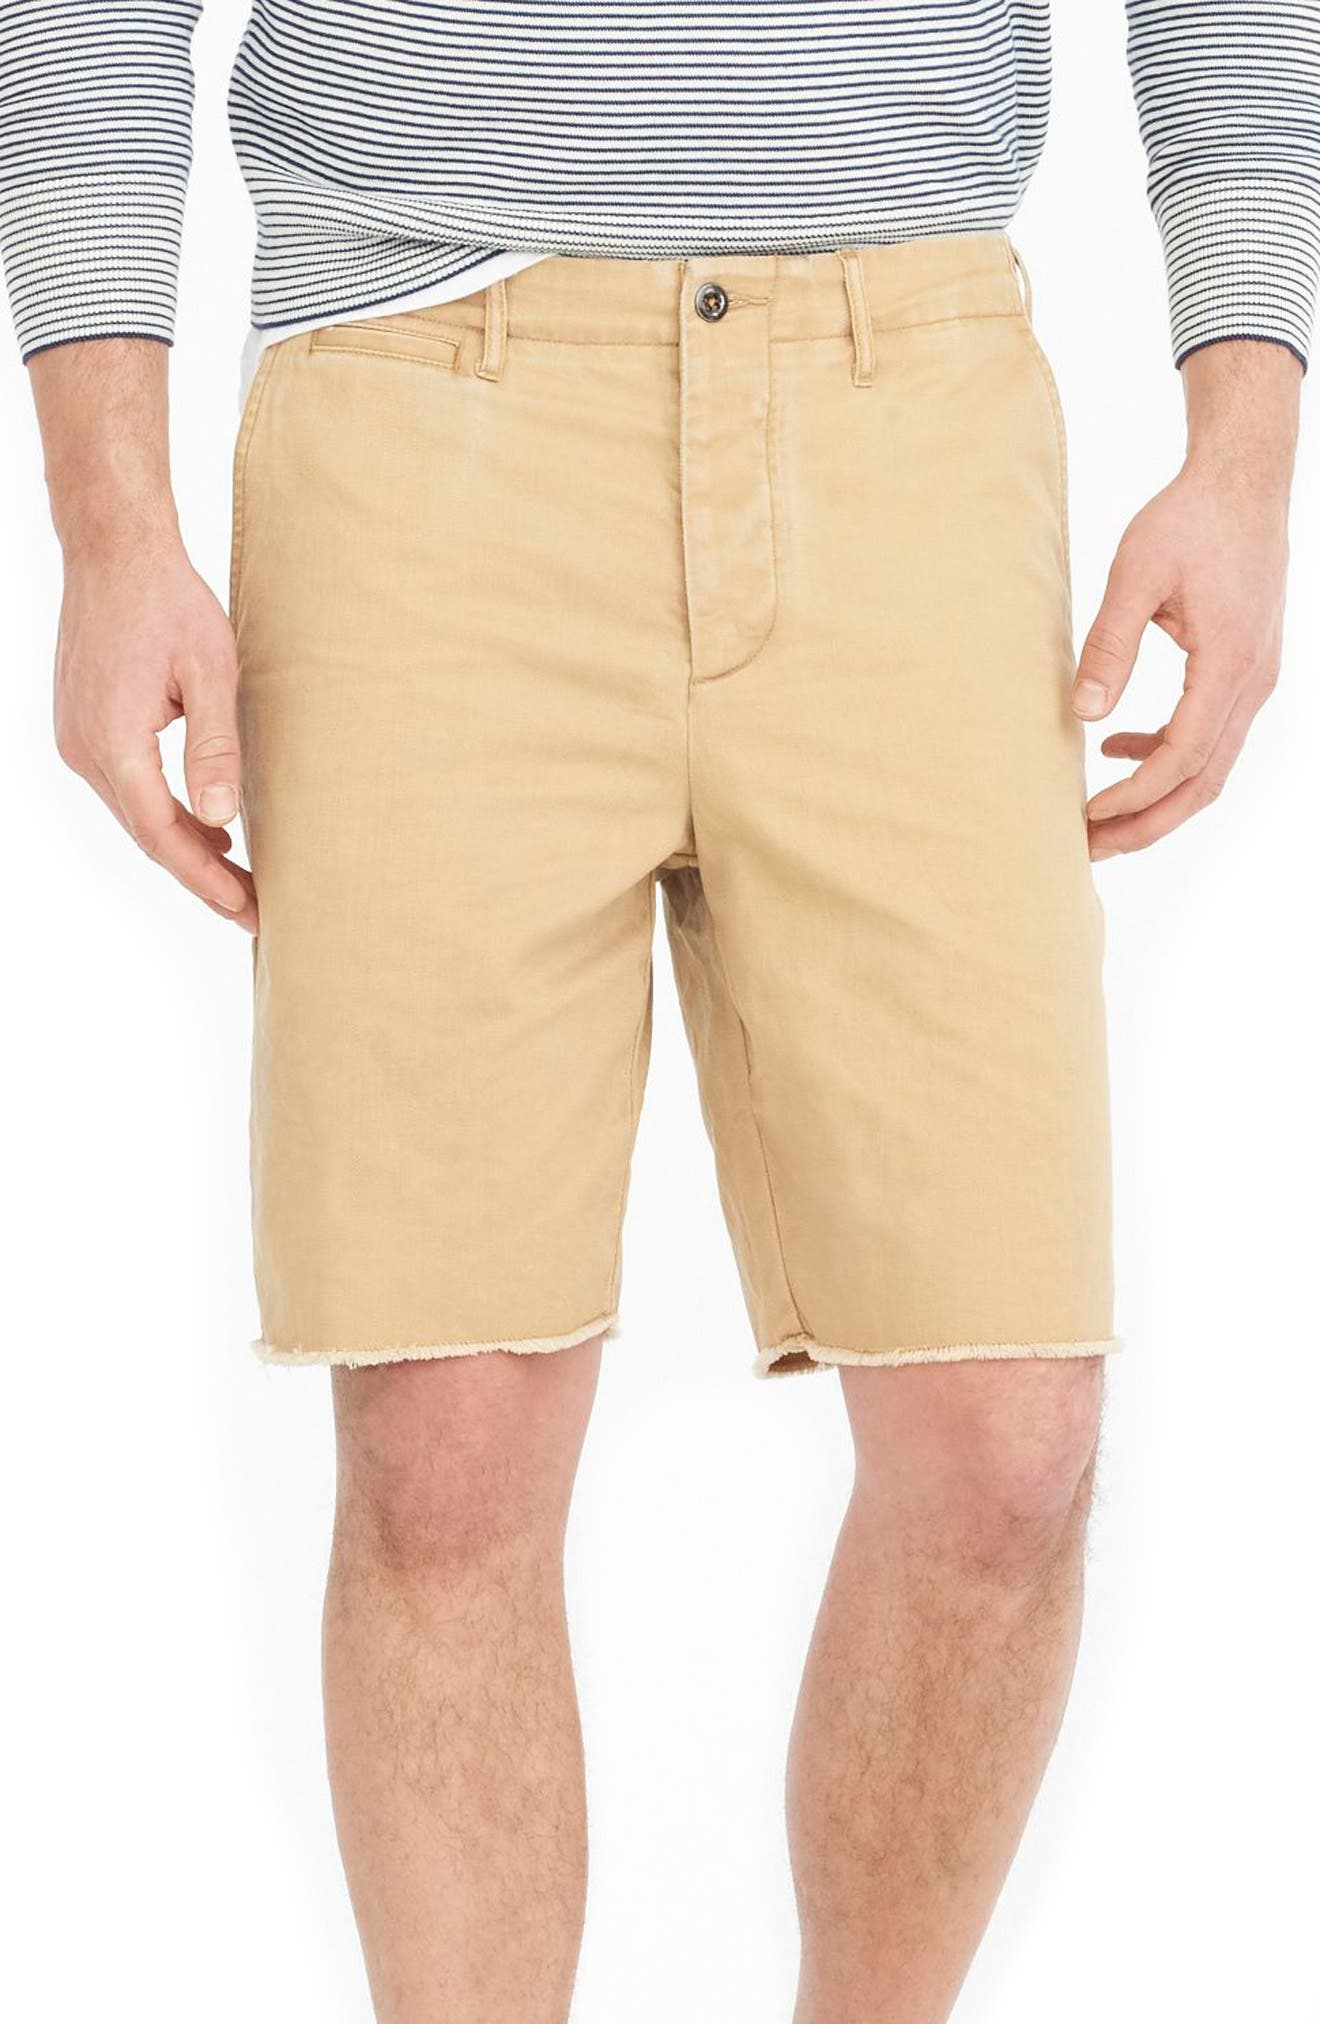 Distressed Officer's Shorts,                         Main,                         color, Golden Khaki